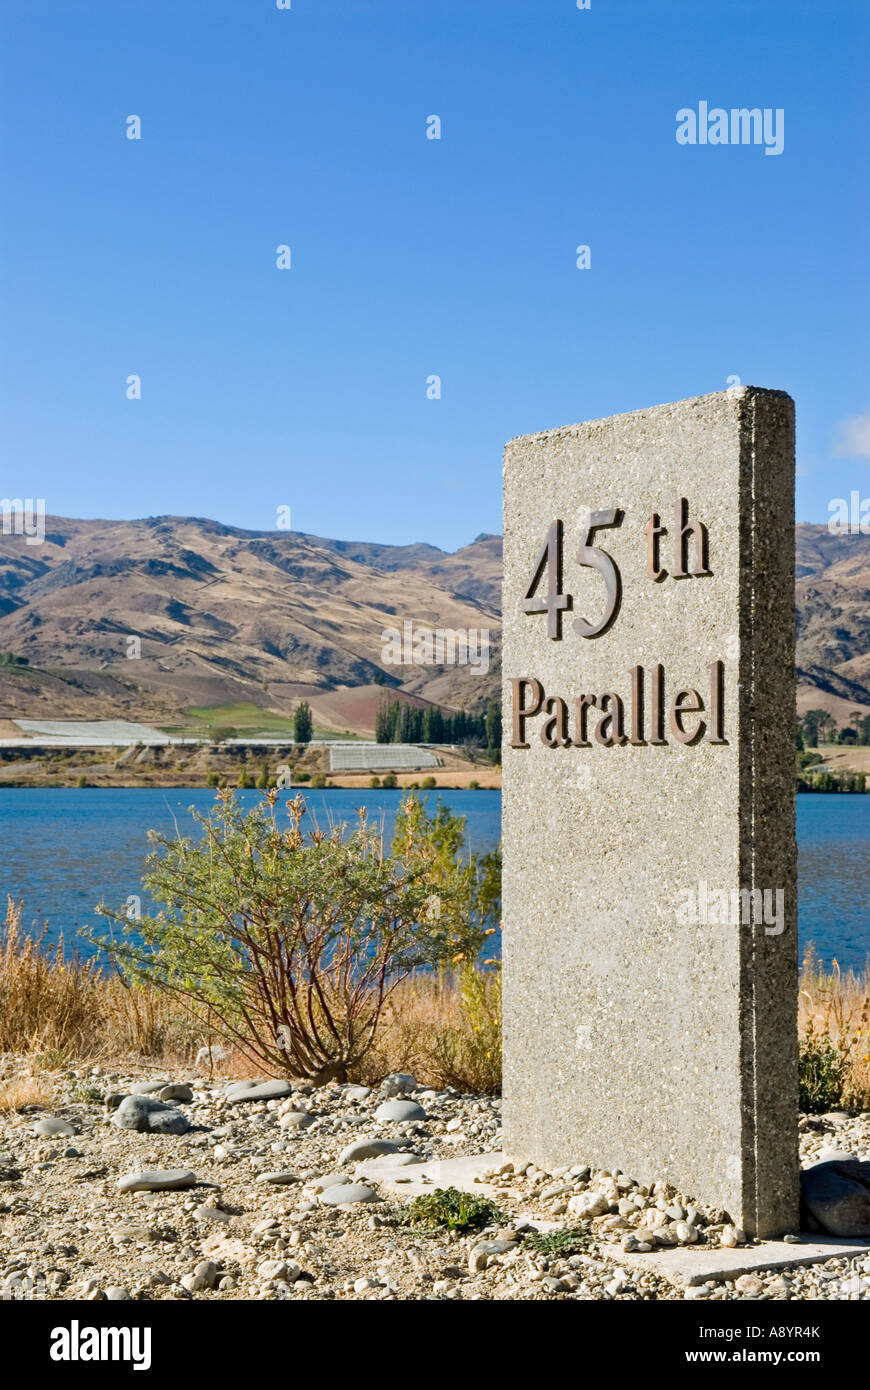 Th Parallel Stock Photos Th Parallel Stock Images Alamy - 45th parallel map us